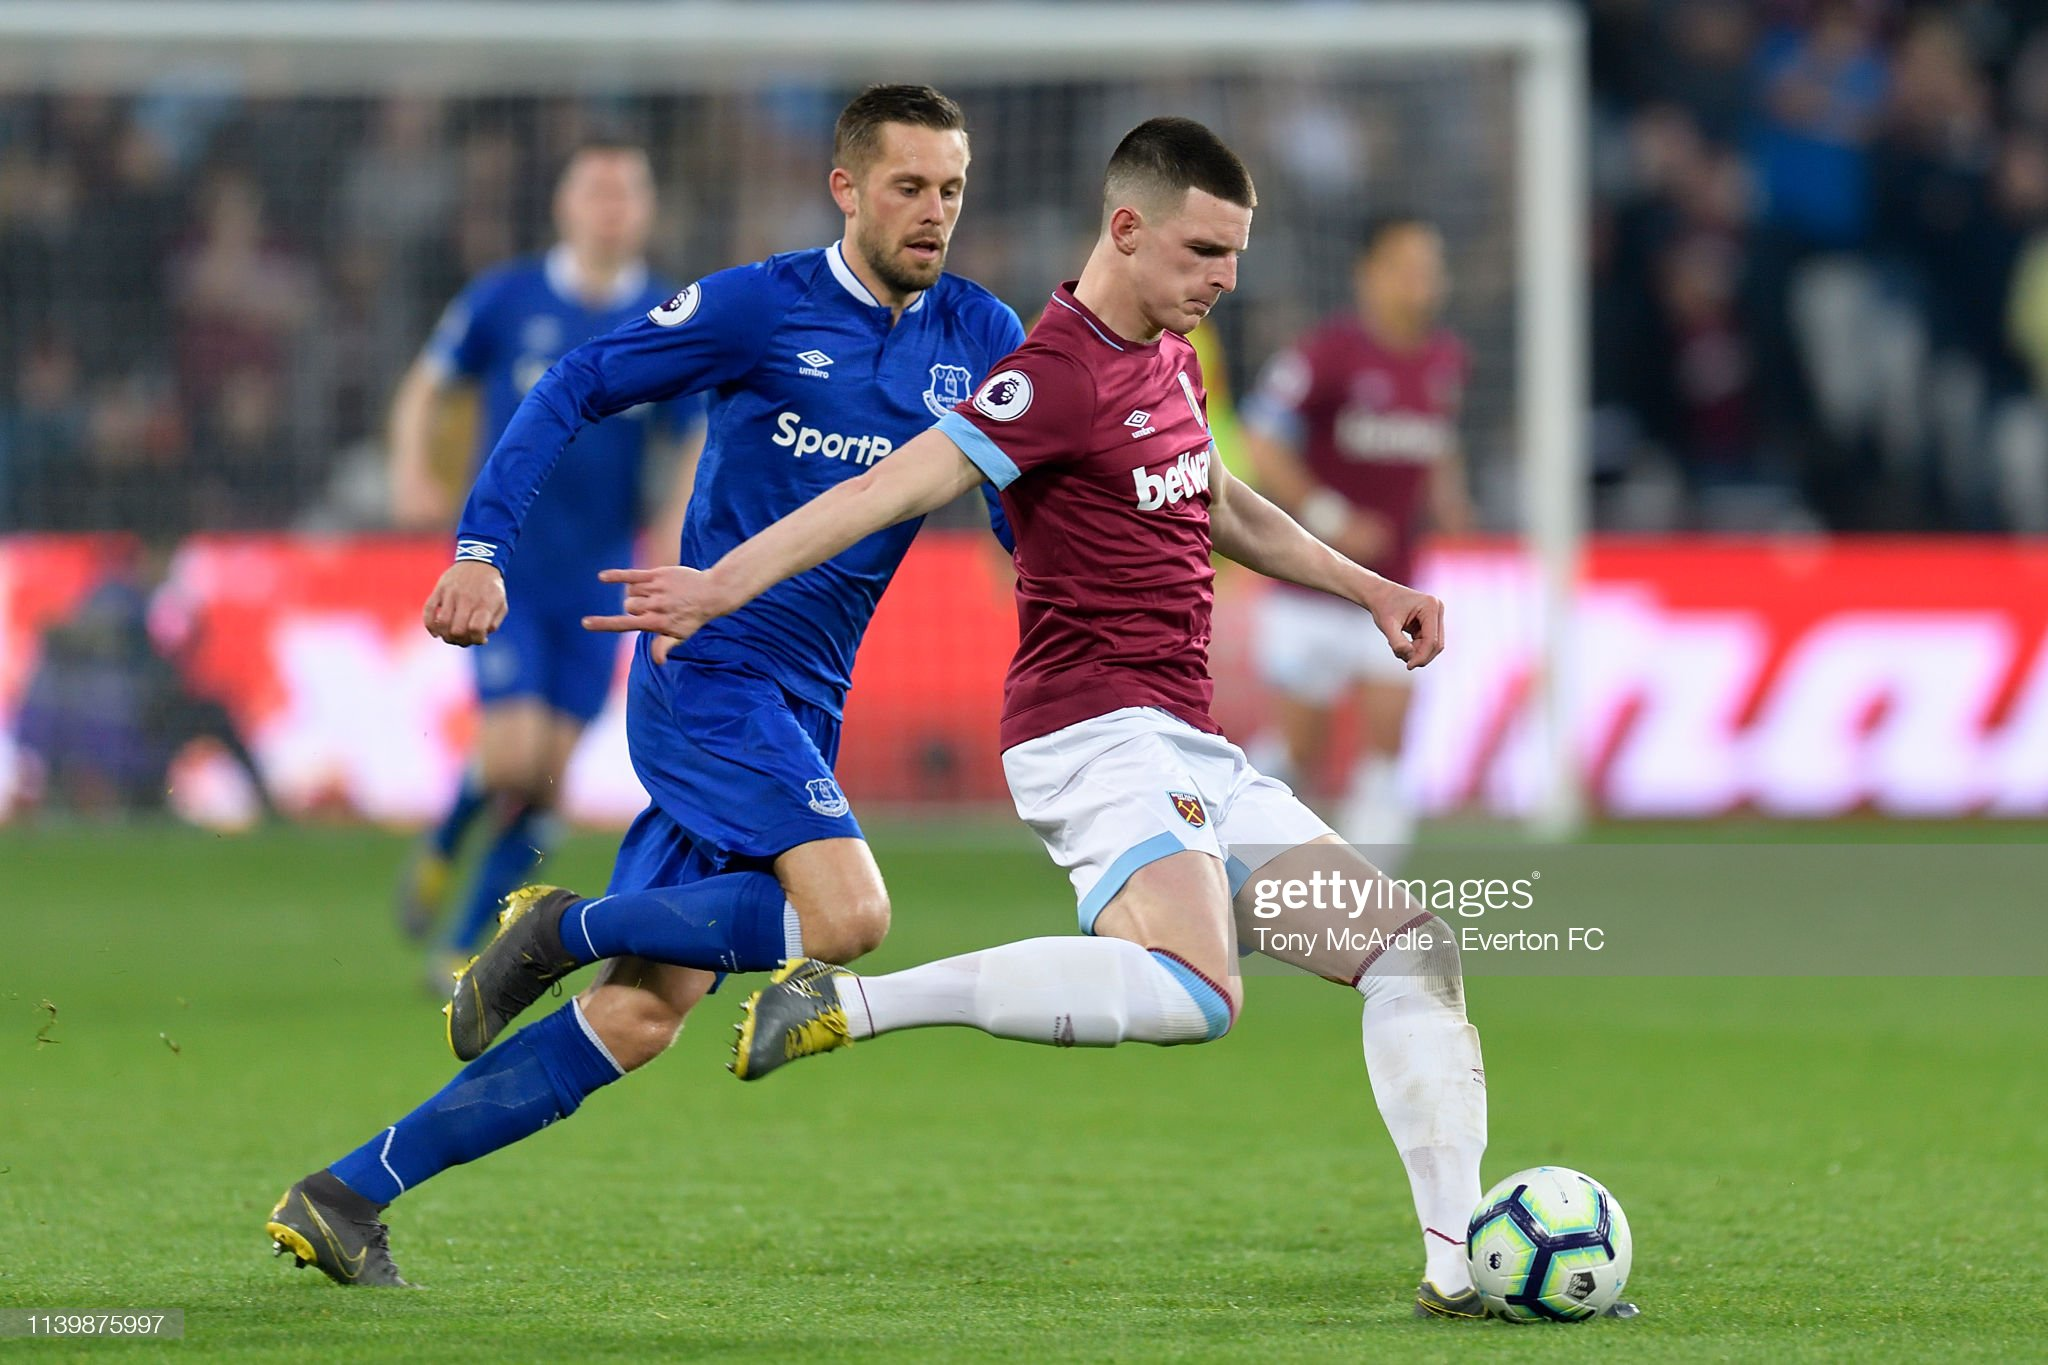 Everton v West Ham preview, prediction and odds